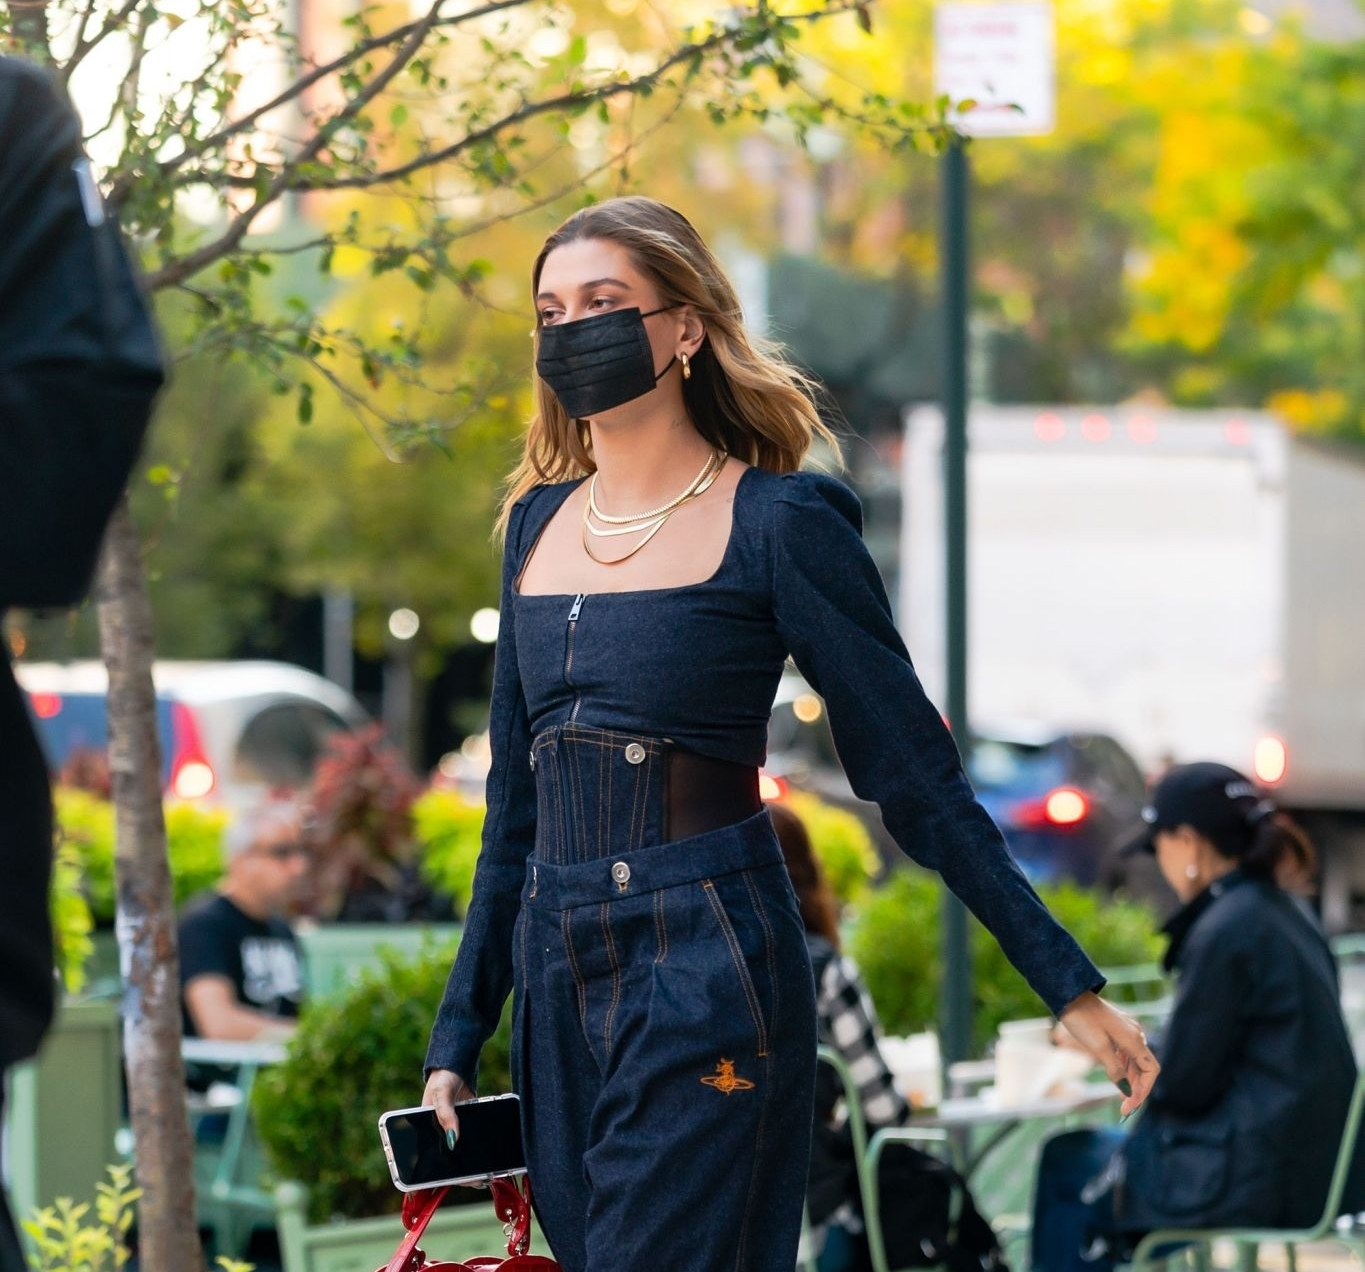 Hailey Bieber rocking a straight fit navy blue jumpsuit with a denim material, full sleeves, puffed shoulder, zipper accents and a scoop neck